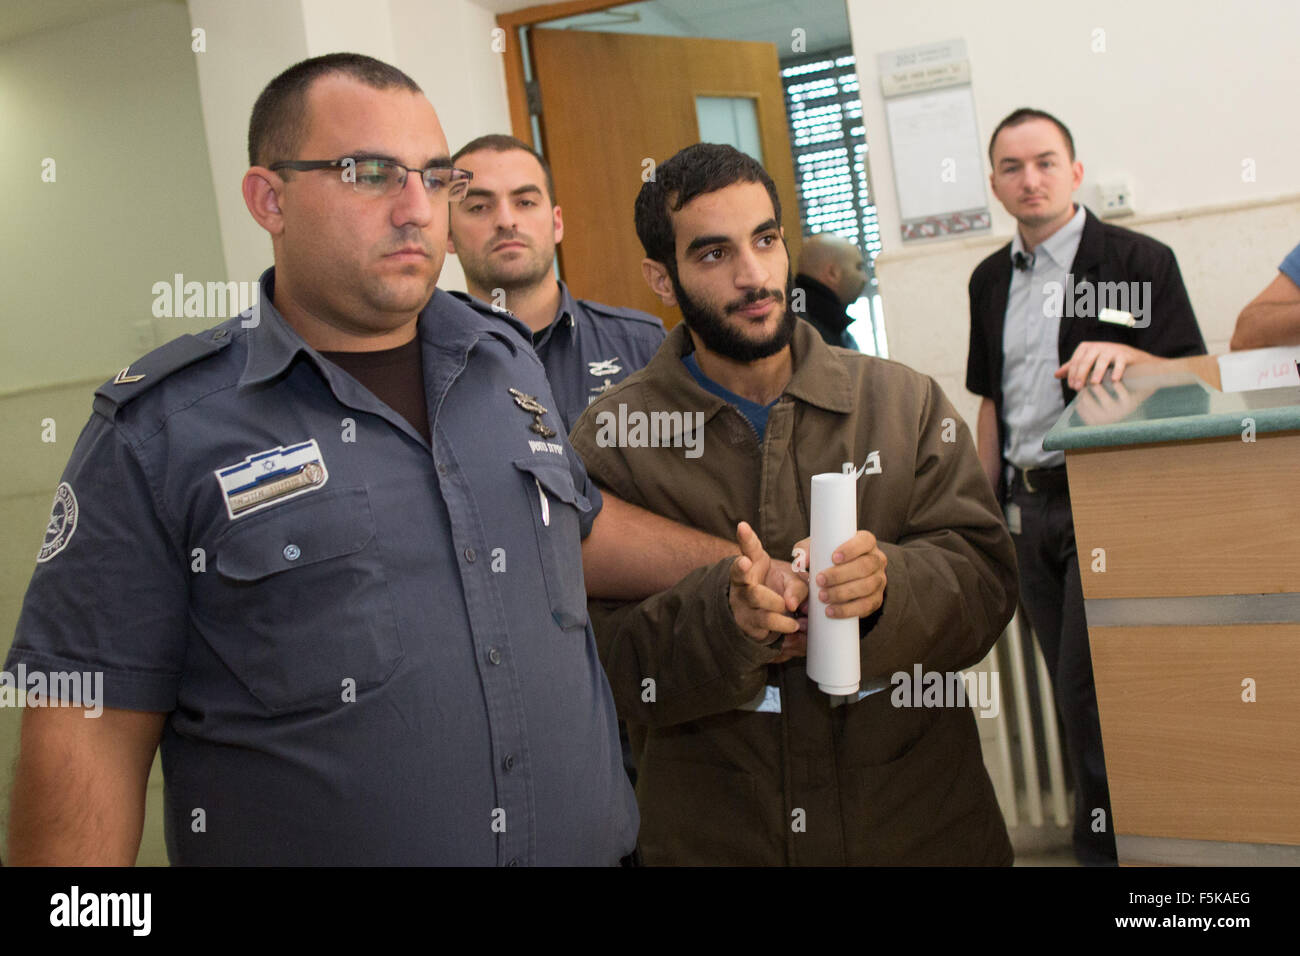 (151105) -- JERUSALEM, Nov. 5, 2015 (Xinhua) -- Abed al-Aziz Meri, 21, is escorted by Israeli prison officers at Stock Photo